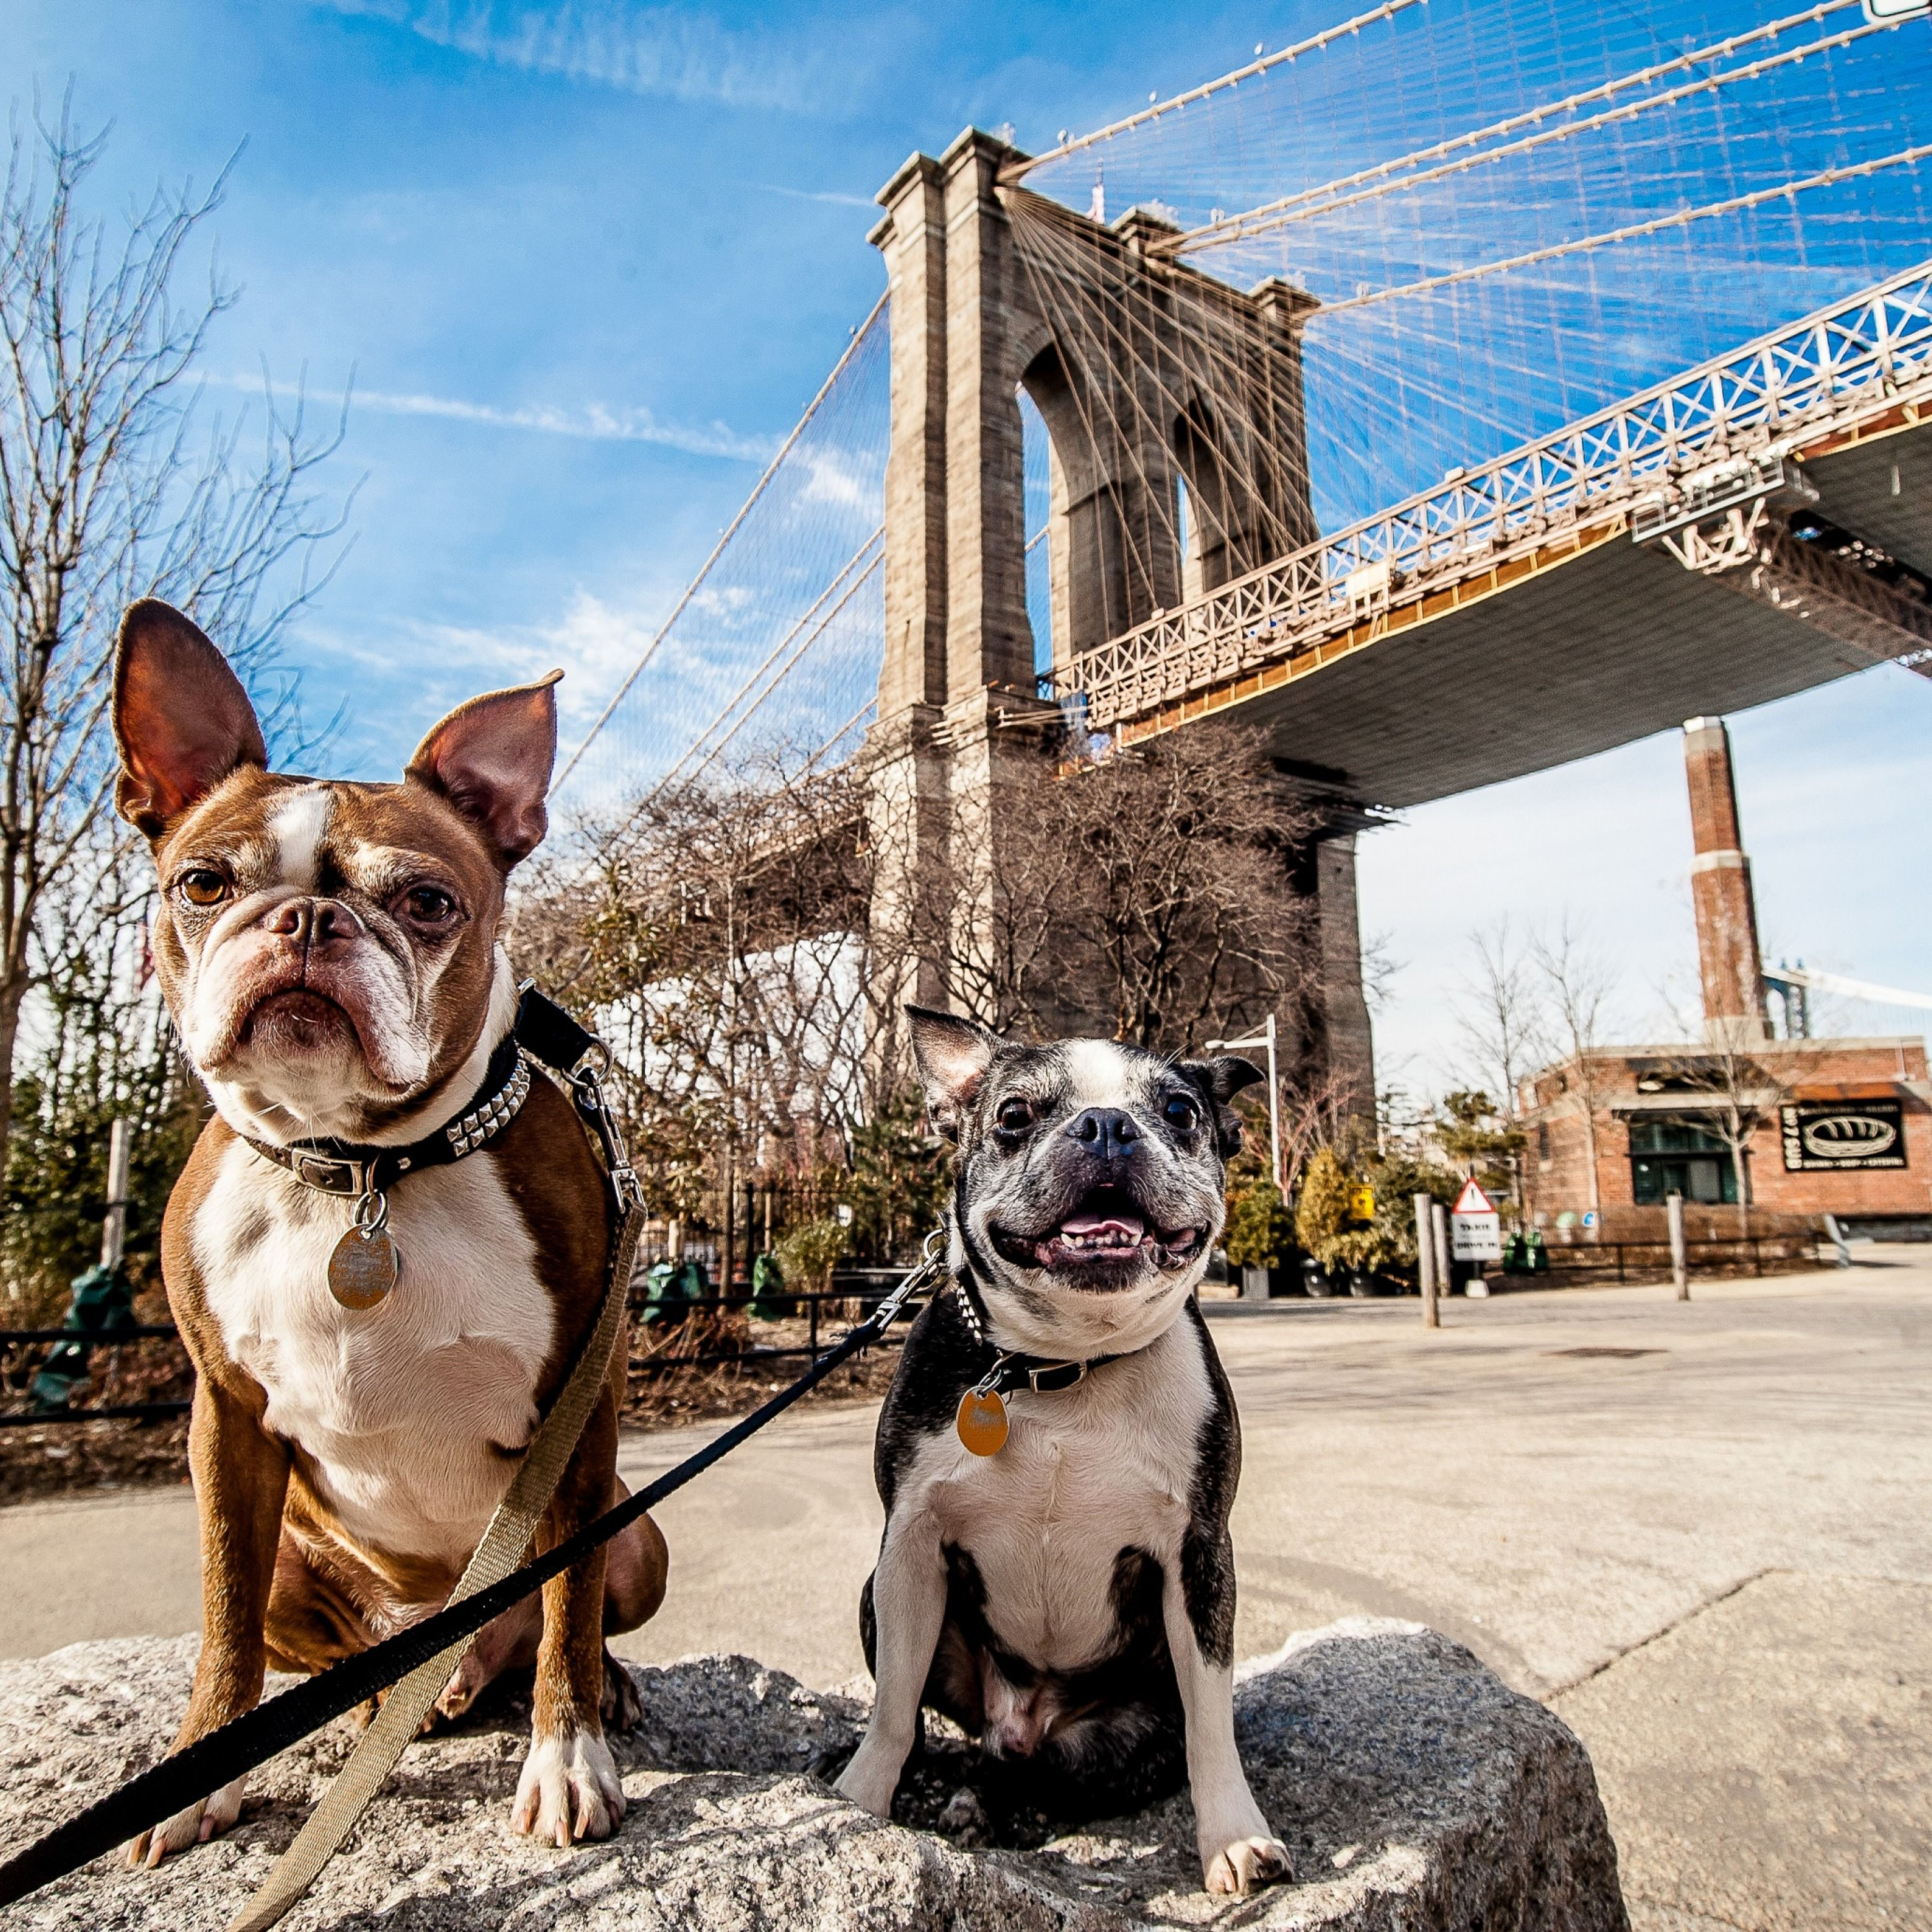 29 Hotels In New York City Where Dogs Stay Free Woofadvisor Blog Dogs Dog Friendly Hotels City Dog